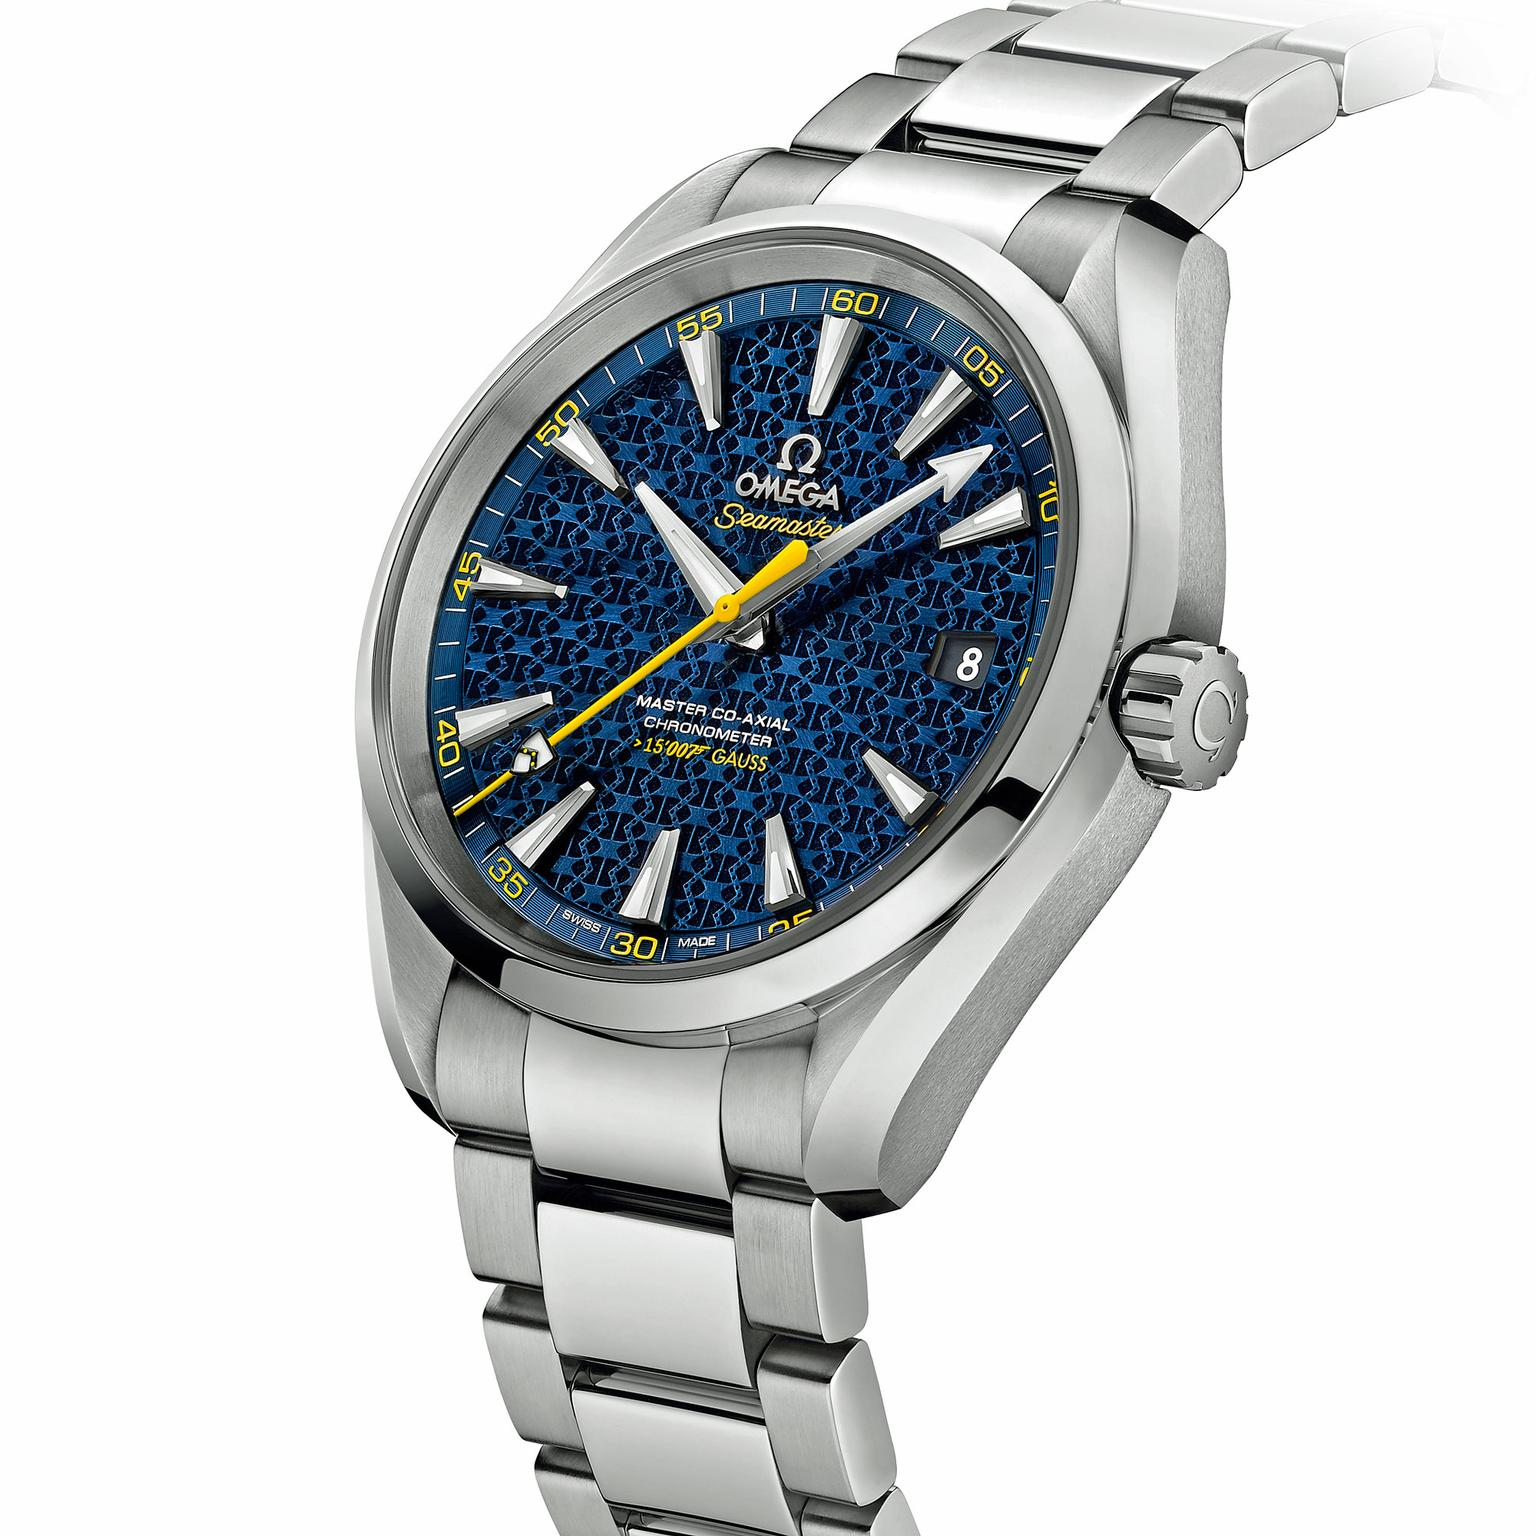 New James Bond watch debuting in Sceptre: the Omega Seamaster Aqua Terra 150M